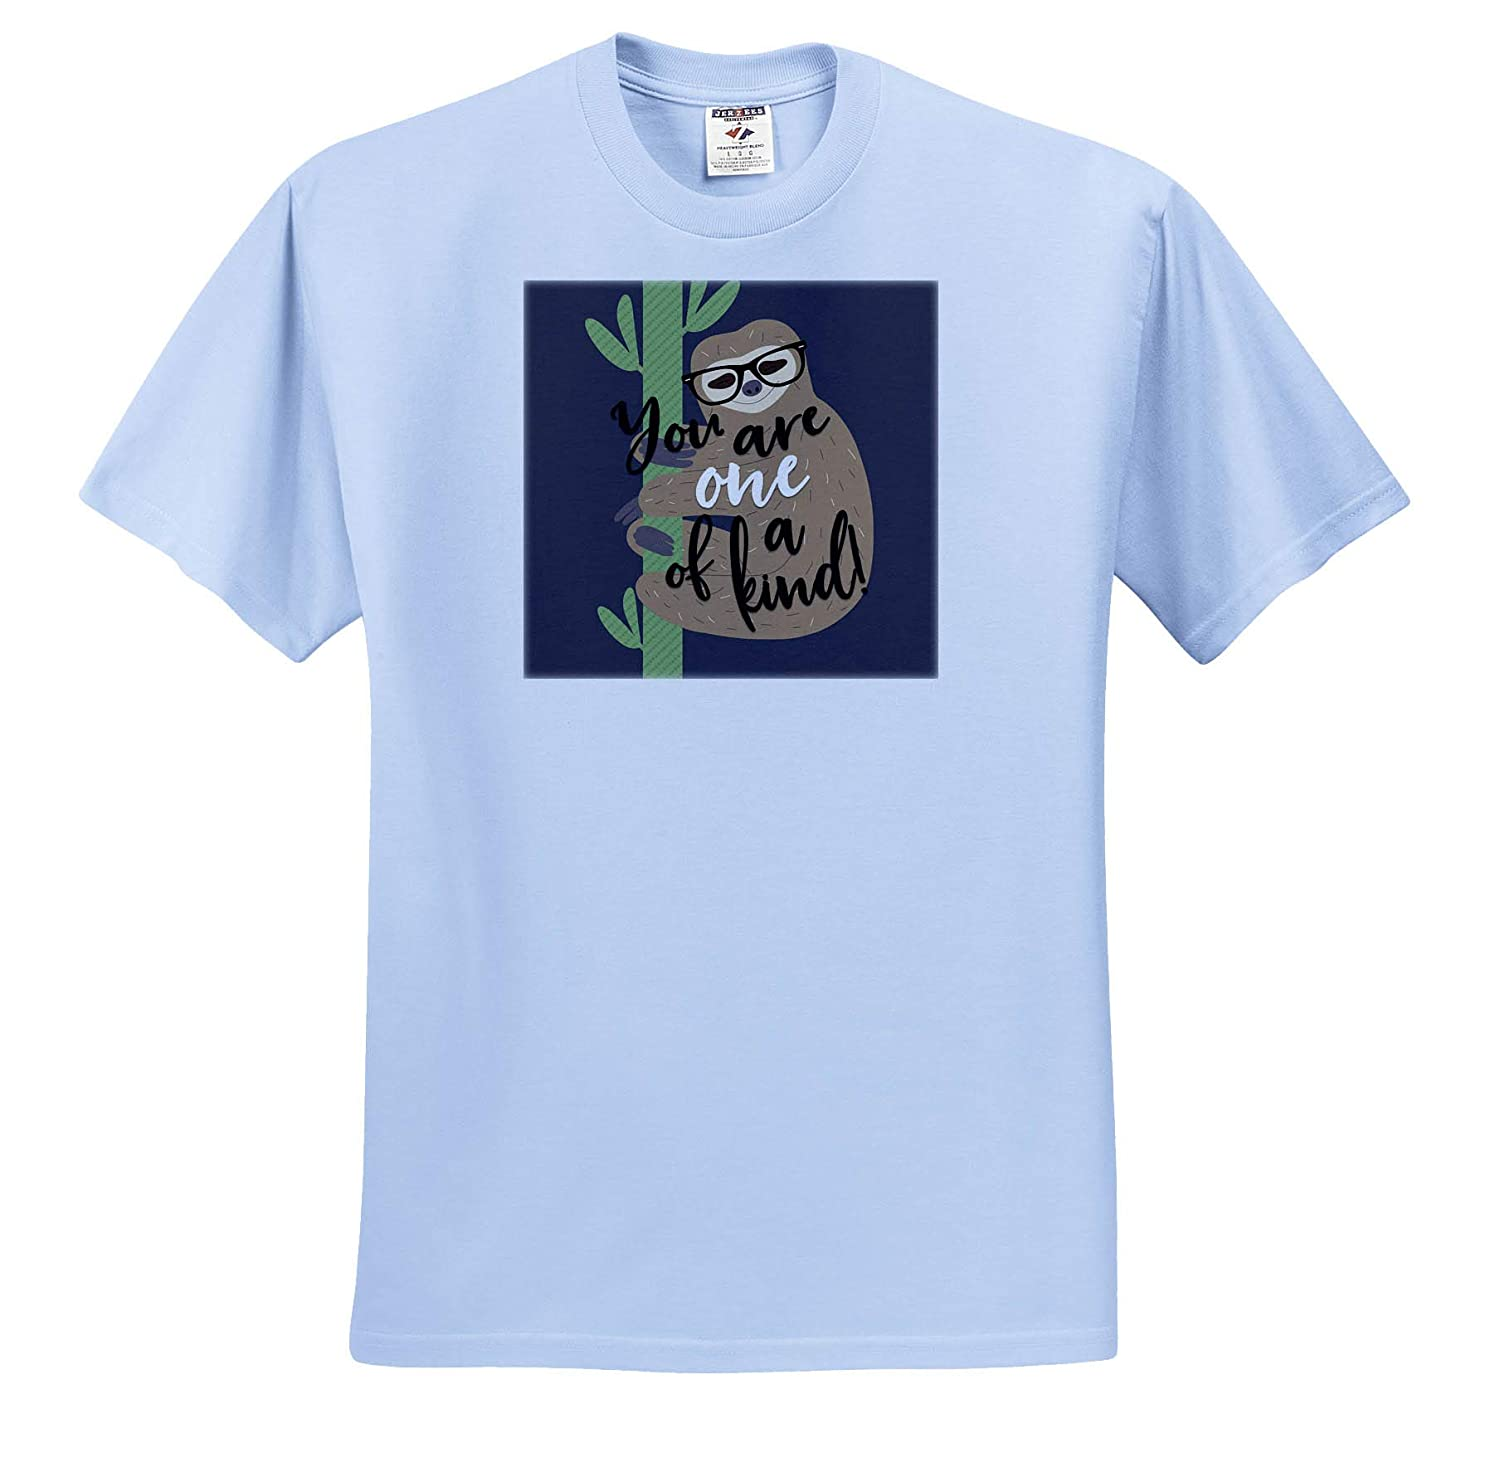 ts/_319853 Adult T-Shirt XL You are One of A Kind Cute Sloth 3dRose Janna Salak Designs Text Art